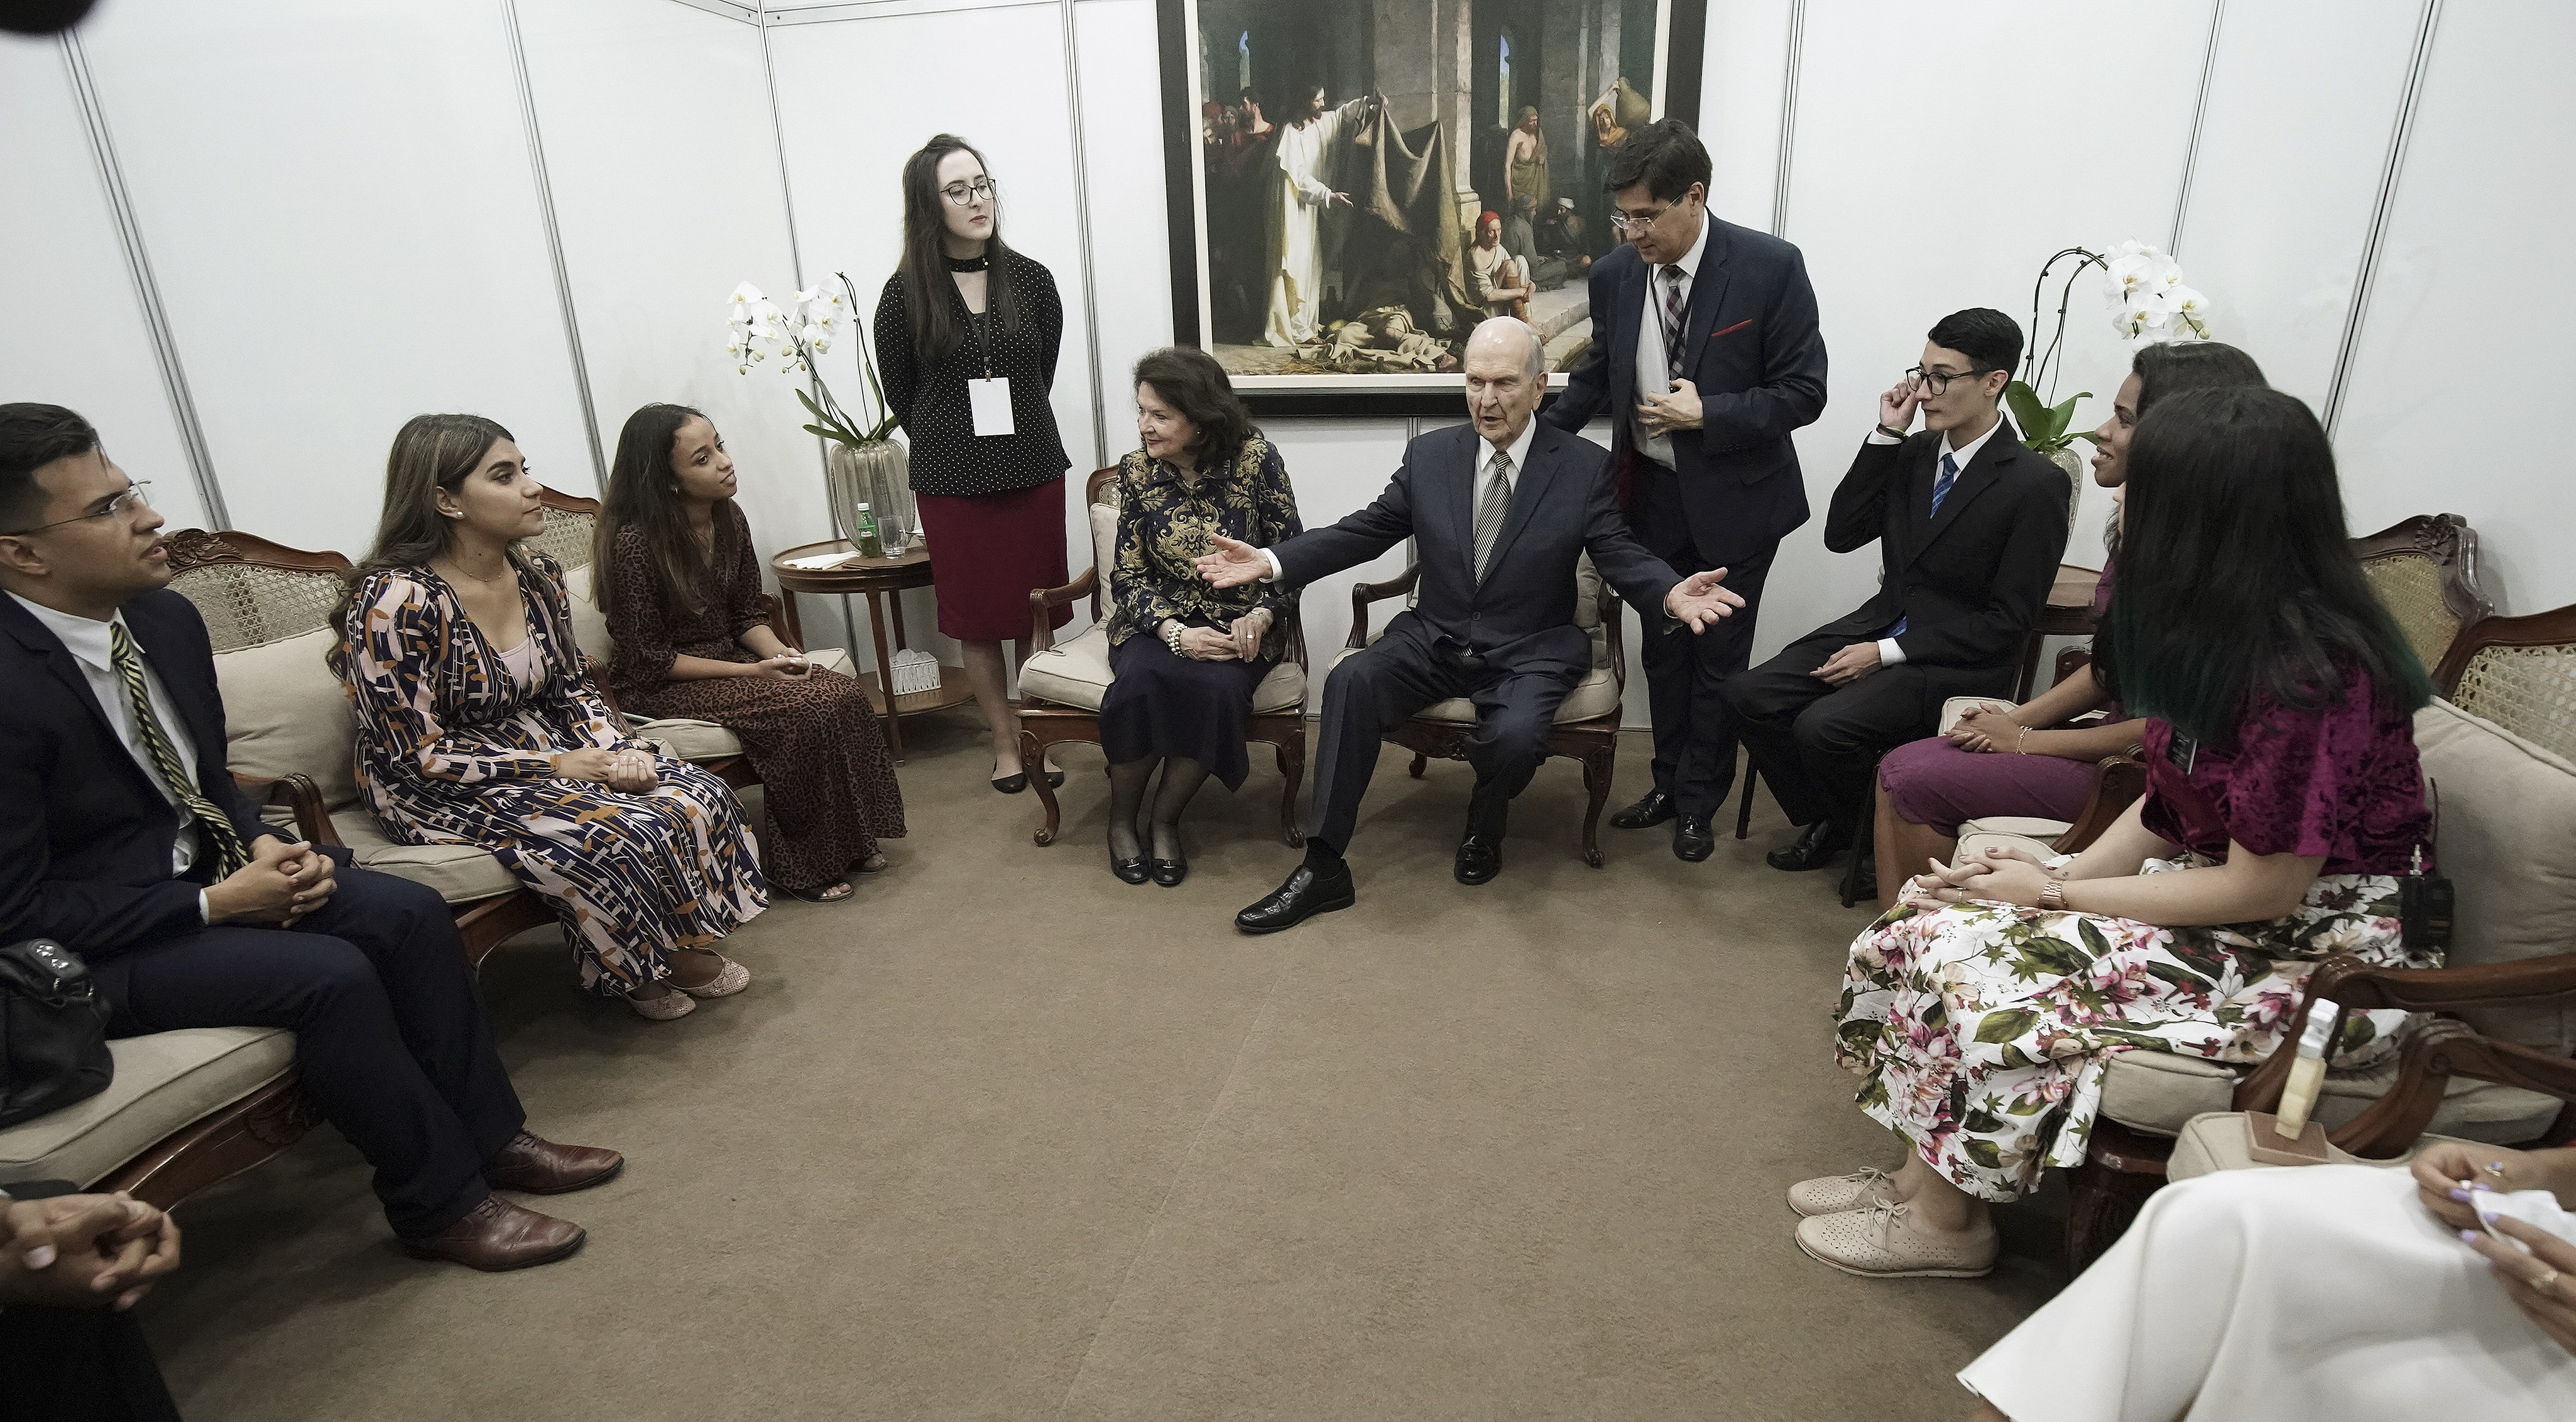 President Russell M. Nelson of The Church of Jesus Christ of Latter-day Saints and his wife Sister Wendy Nelson meet with young adults in Sao Paulo, Brazil, on Sunday, Sept. 1, 2019.